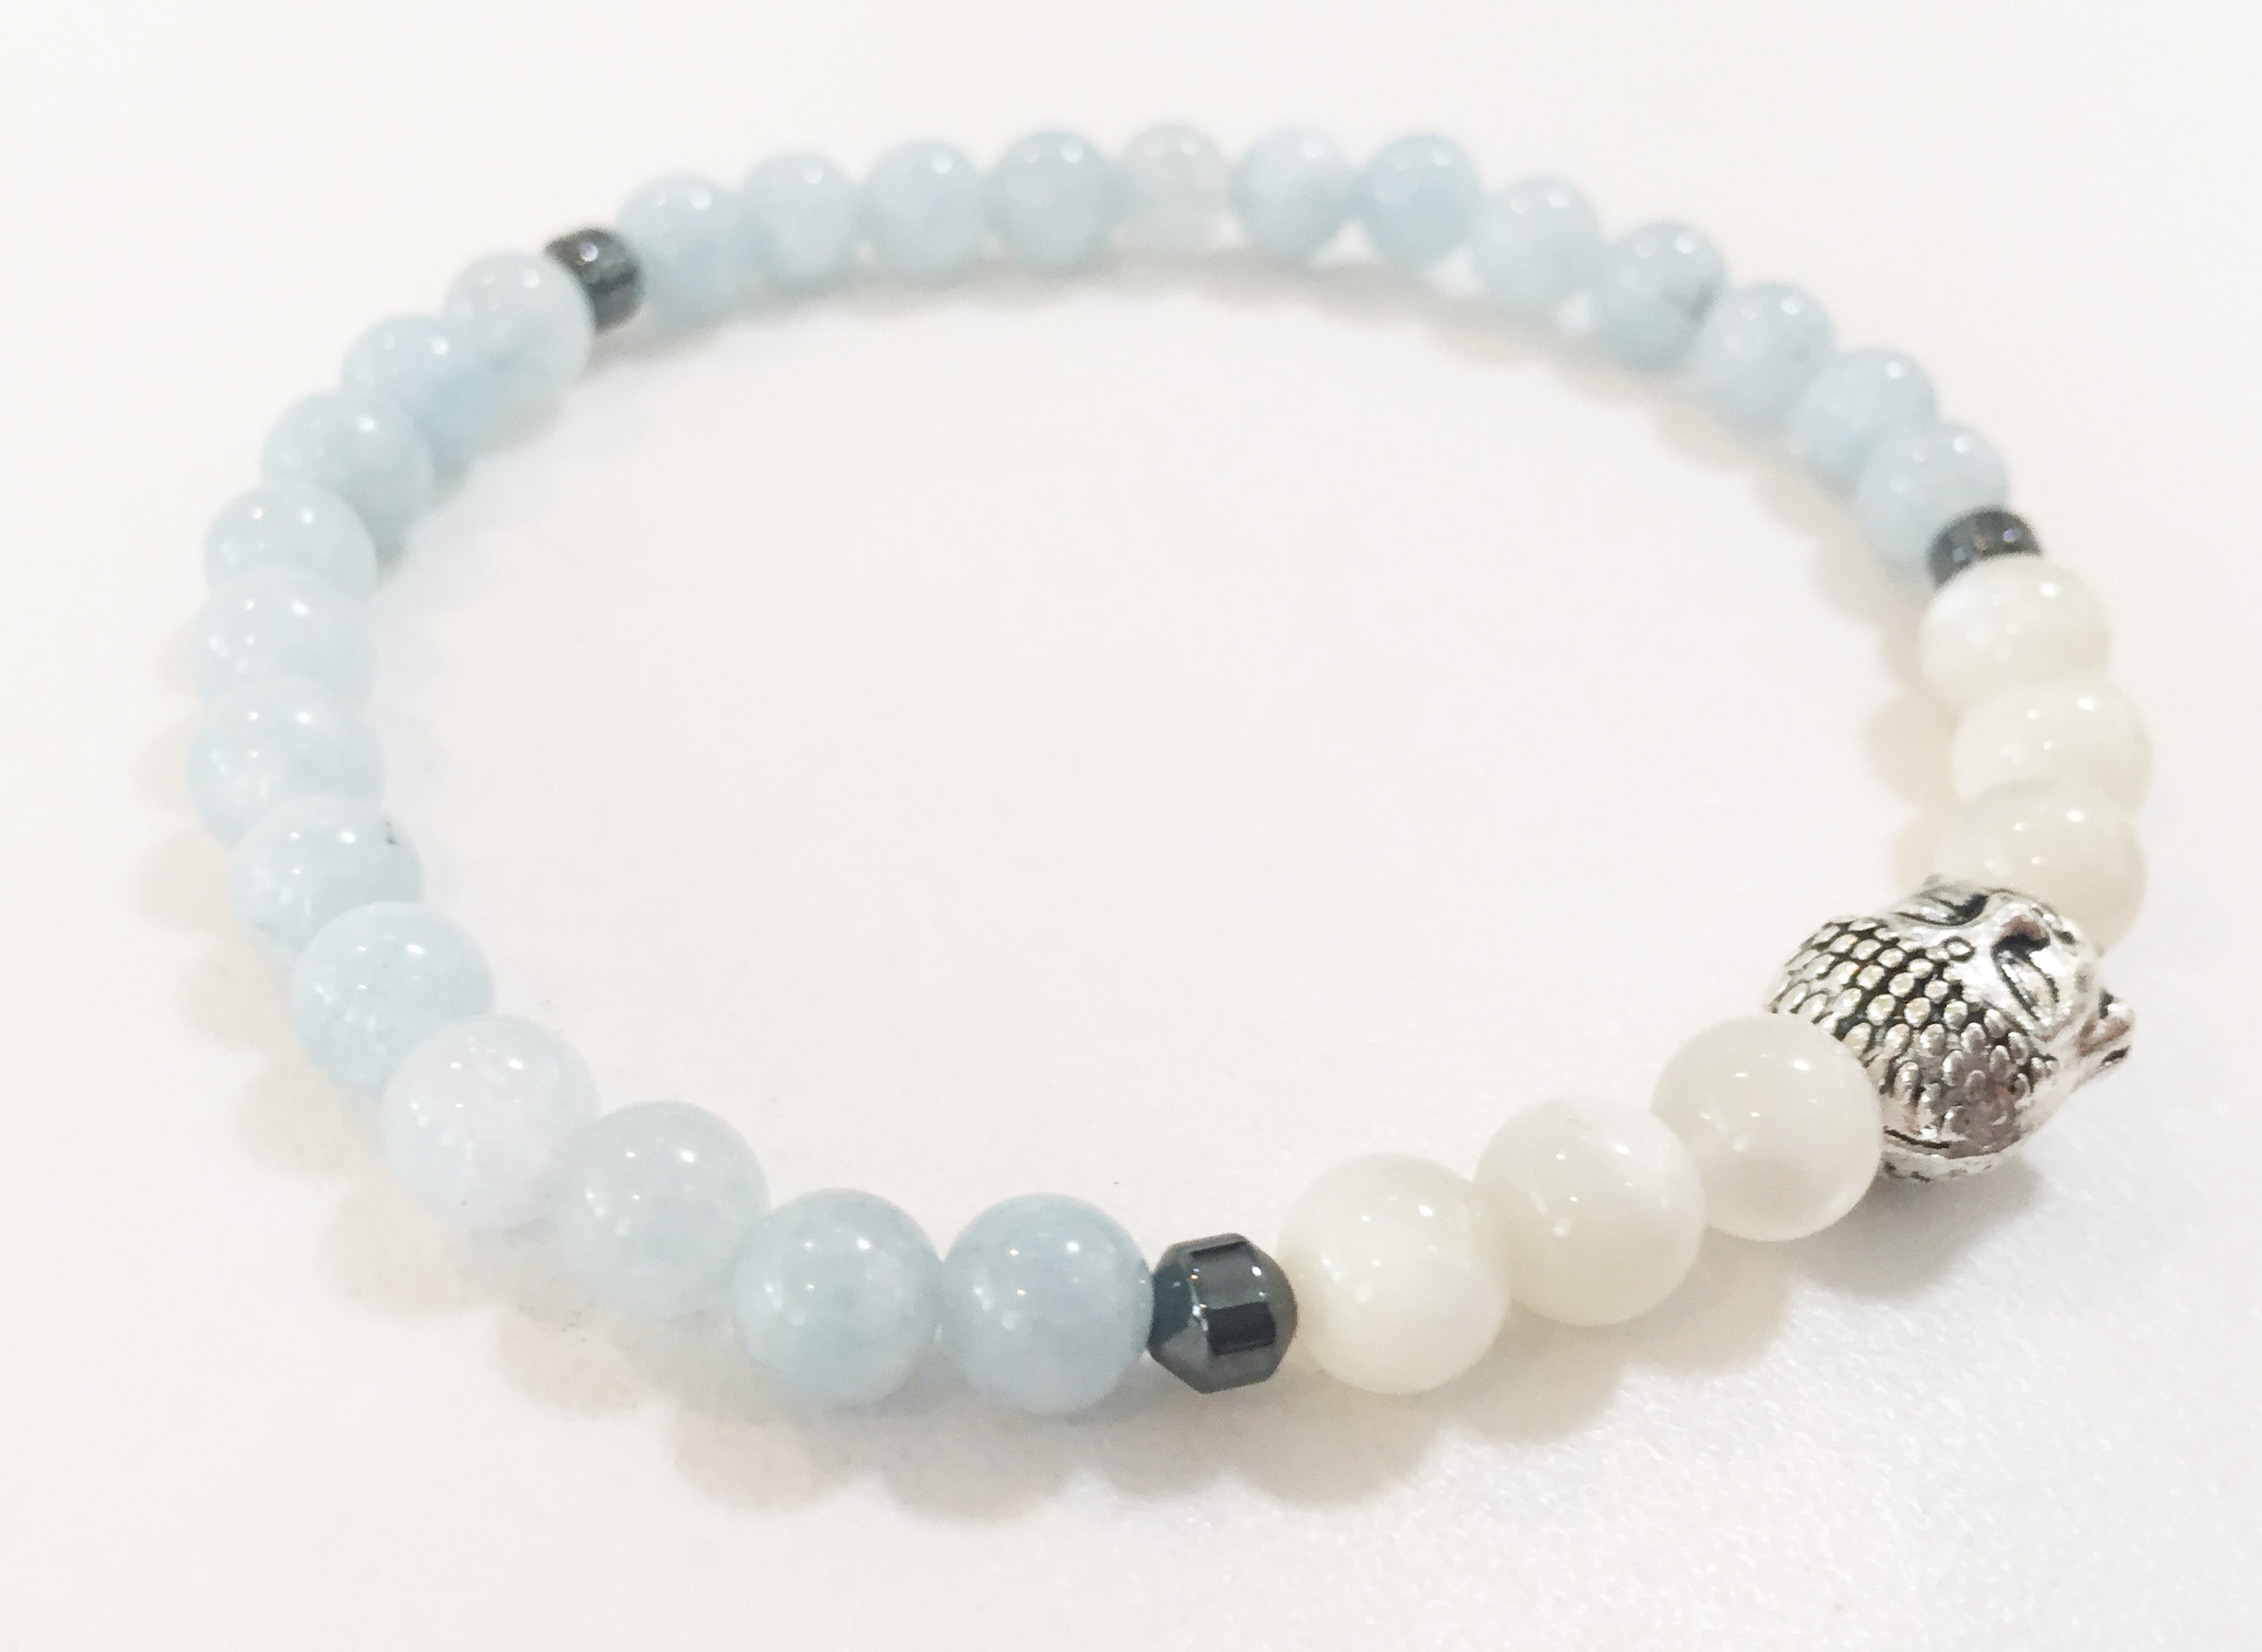 6mm Aquamarine & Moonstone Stretch Bracelet with Buddha Head